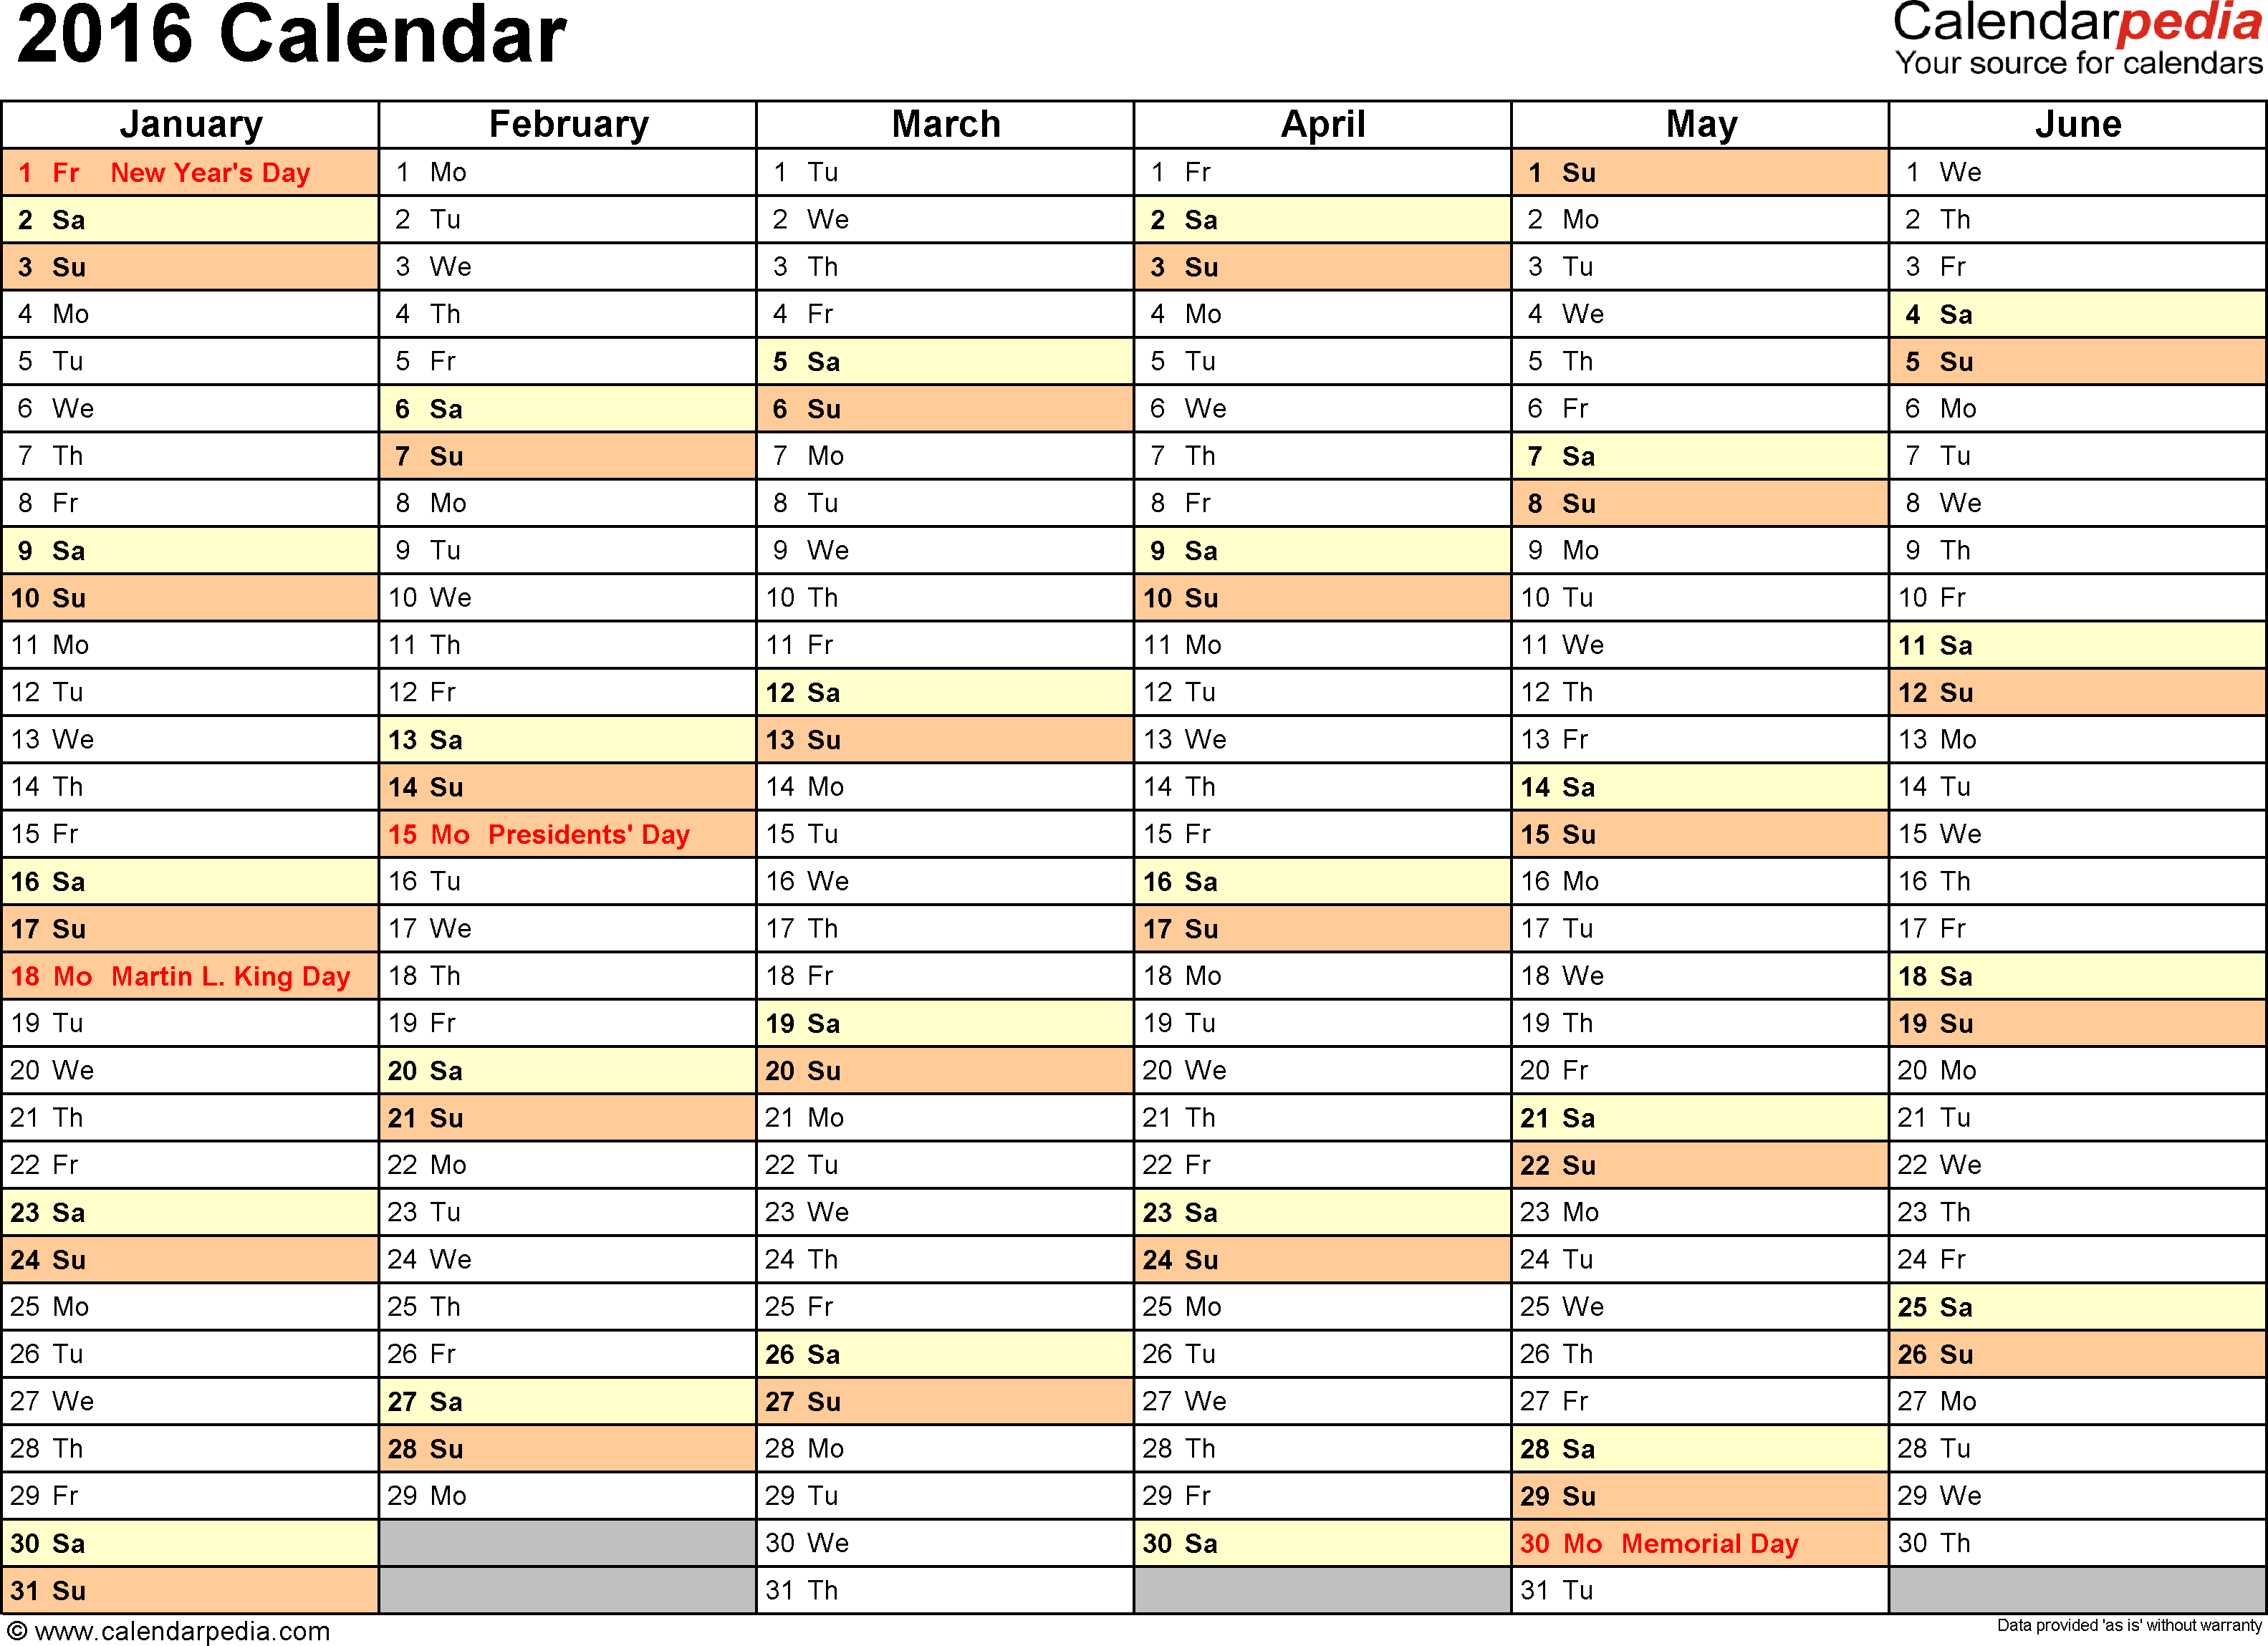 Ediblewildsus  Prepossessing  Calendar  Download  Free Printable Excel Templates Xls With Heavenly Template   Calendar For Excel Months Horizontally  Pages Landscape Orientation With Alluring Excel Inventory Tracker Also Shortcuts On Excel In Addition Share Excel Document And Translate Excel File As Well As Excel Formula To Count Rows Additionally Excel Merge Data In Cells From Calendarpediacom With Ediblewildsus  Heavenly  Calendar  Download  Free Printable Excel Templates Xls With Alluring Template   Calendar For Excel Months Horizontally  Pages Landscape Orientation And Prepossessing Excel Inventory Tracker Also Shortcuts On Excel In Addition Share Excel Document From Calendarpediacom